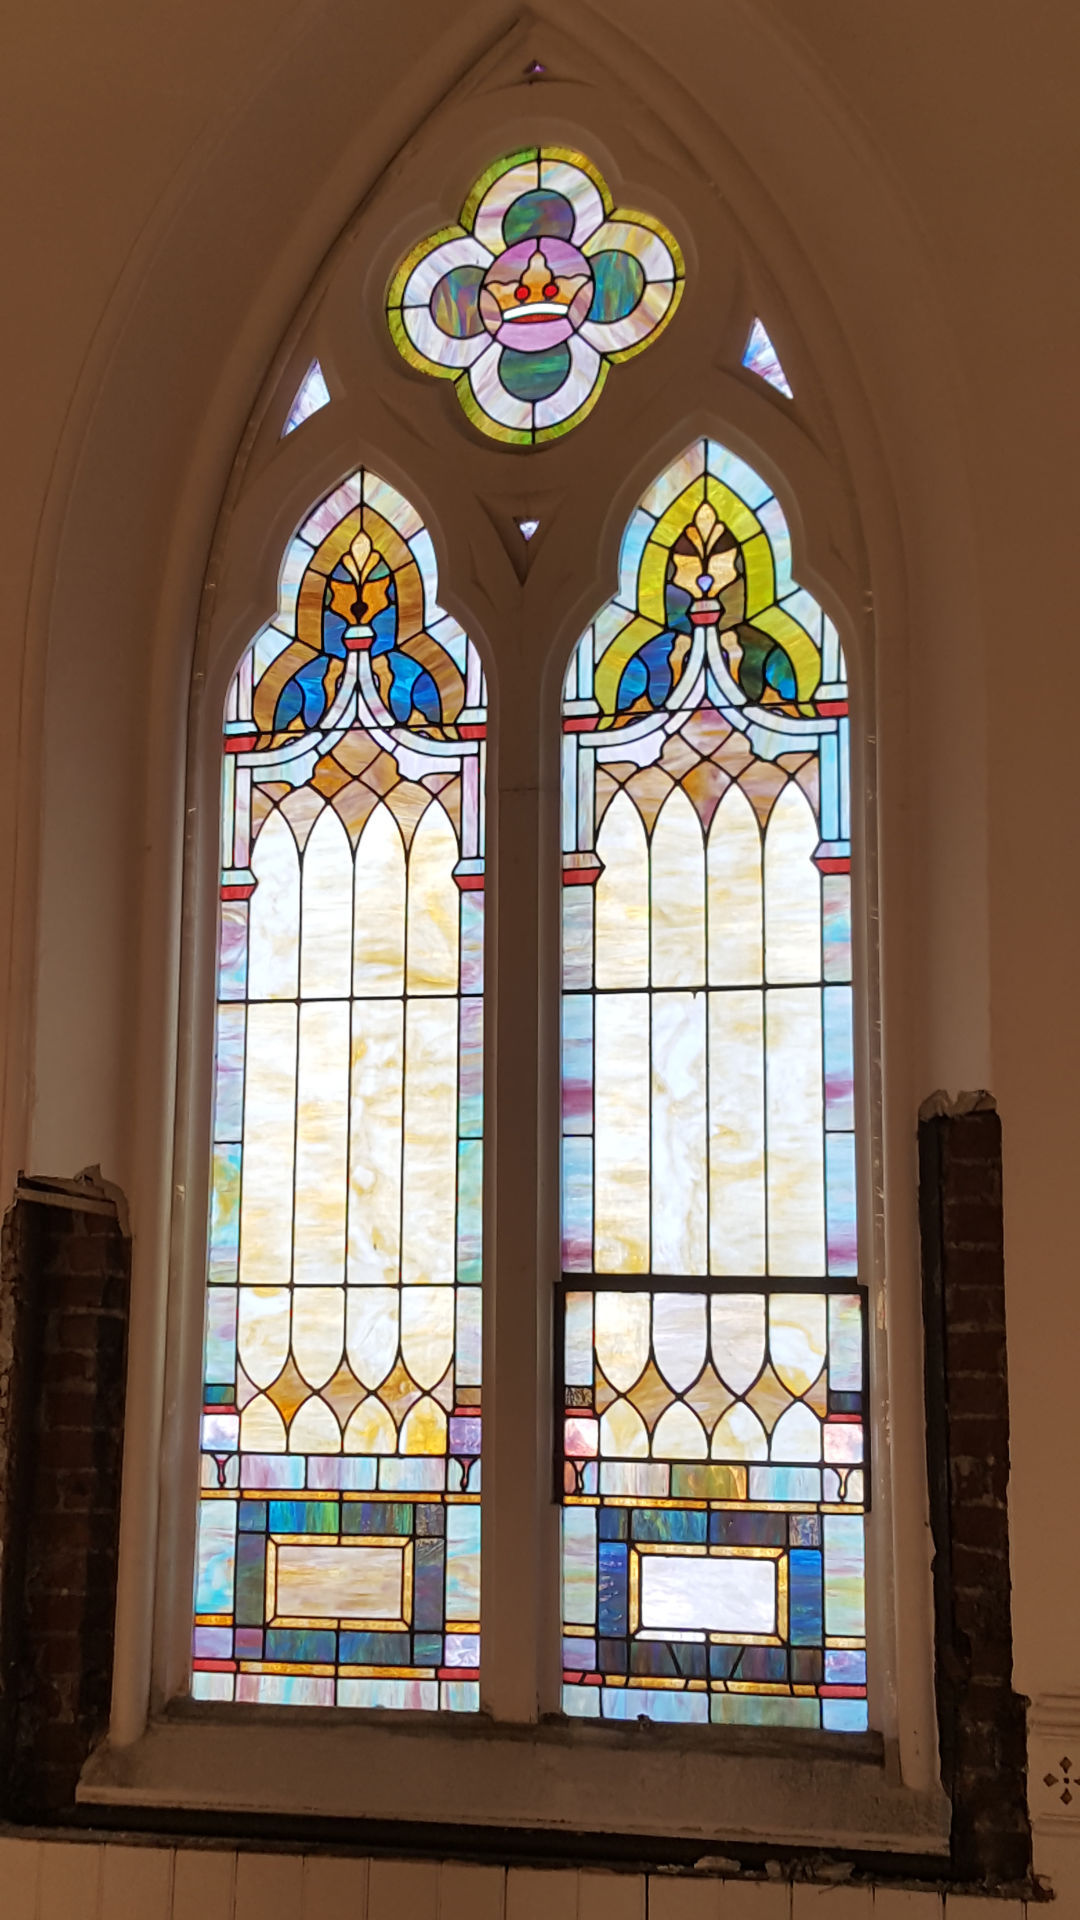 Citizen steps up to save church windows